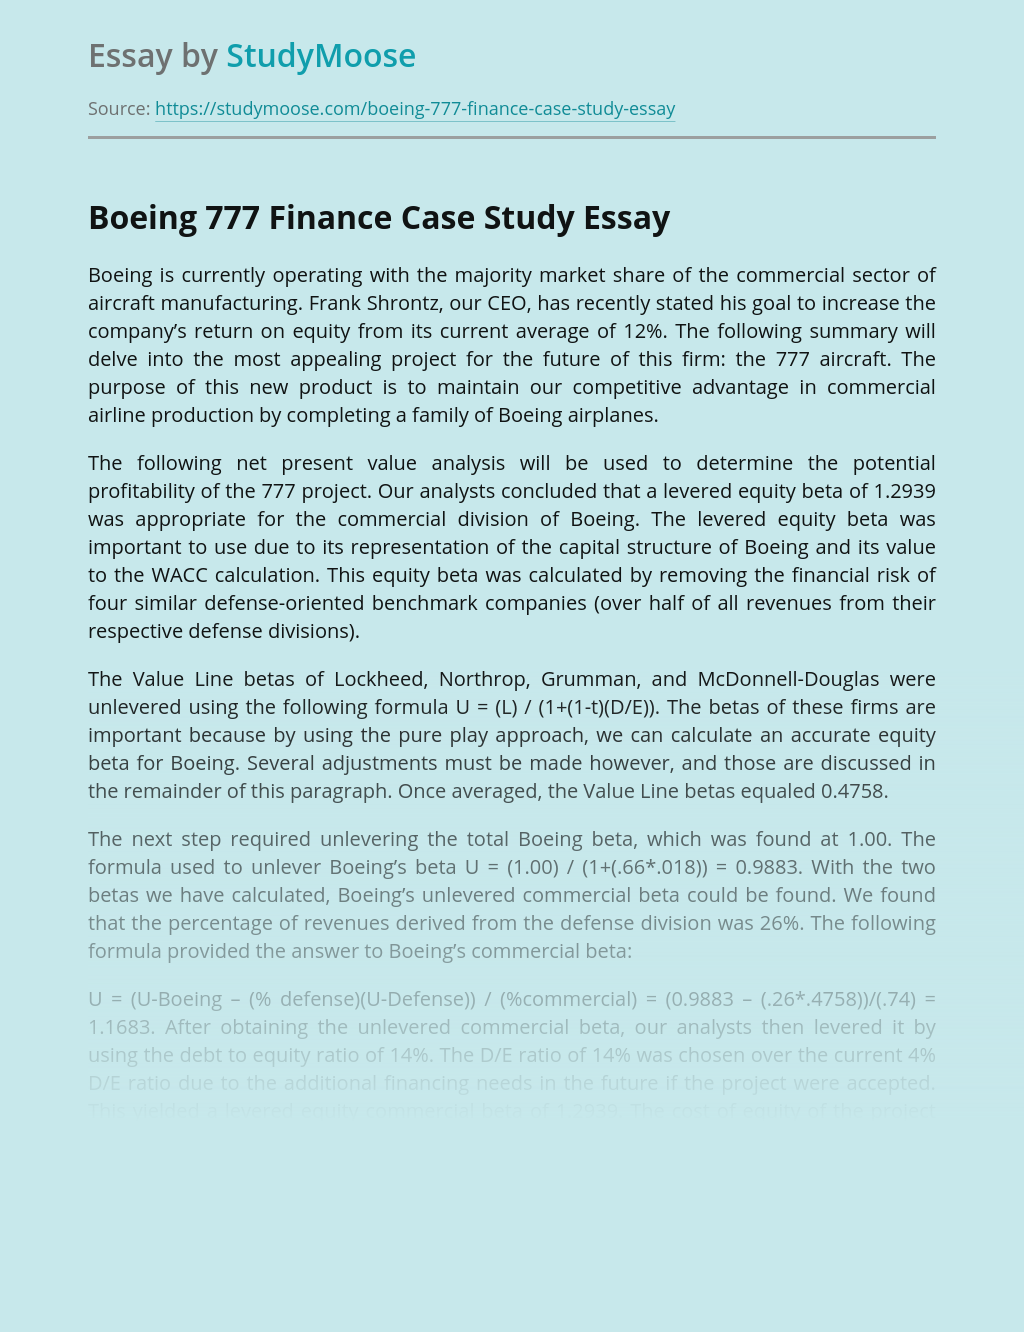 Boeing 777 Finance Case Study